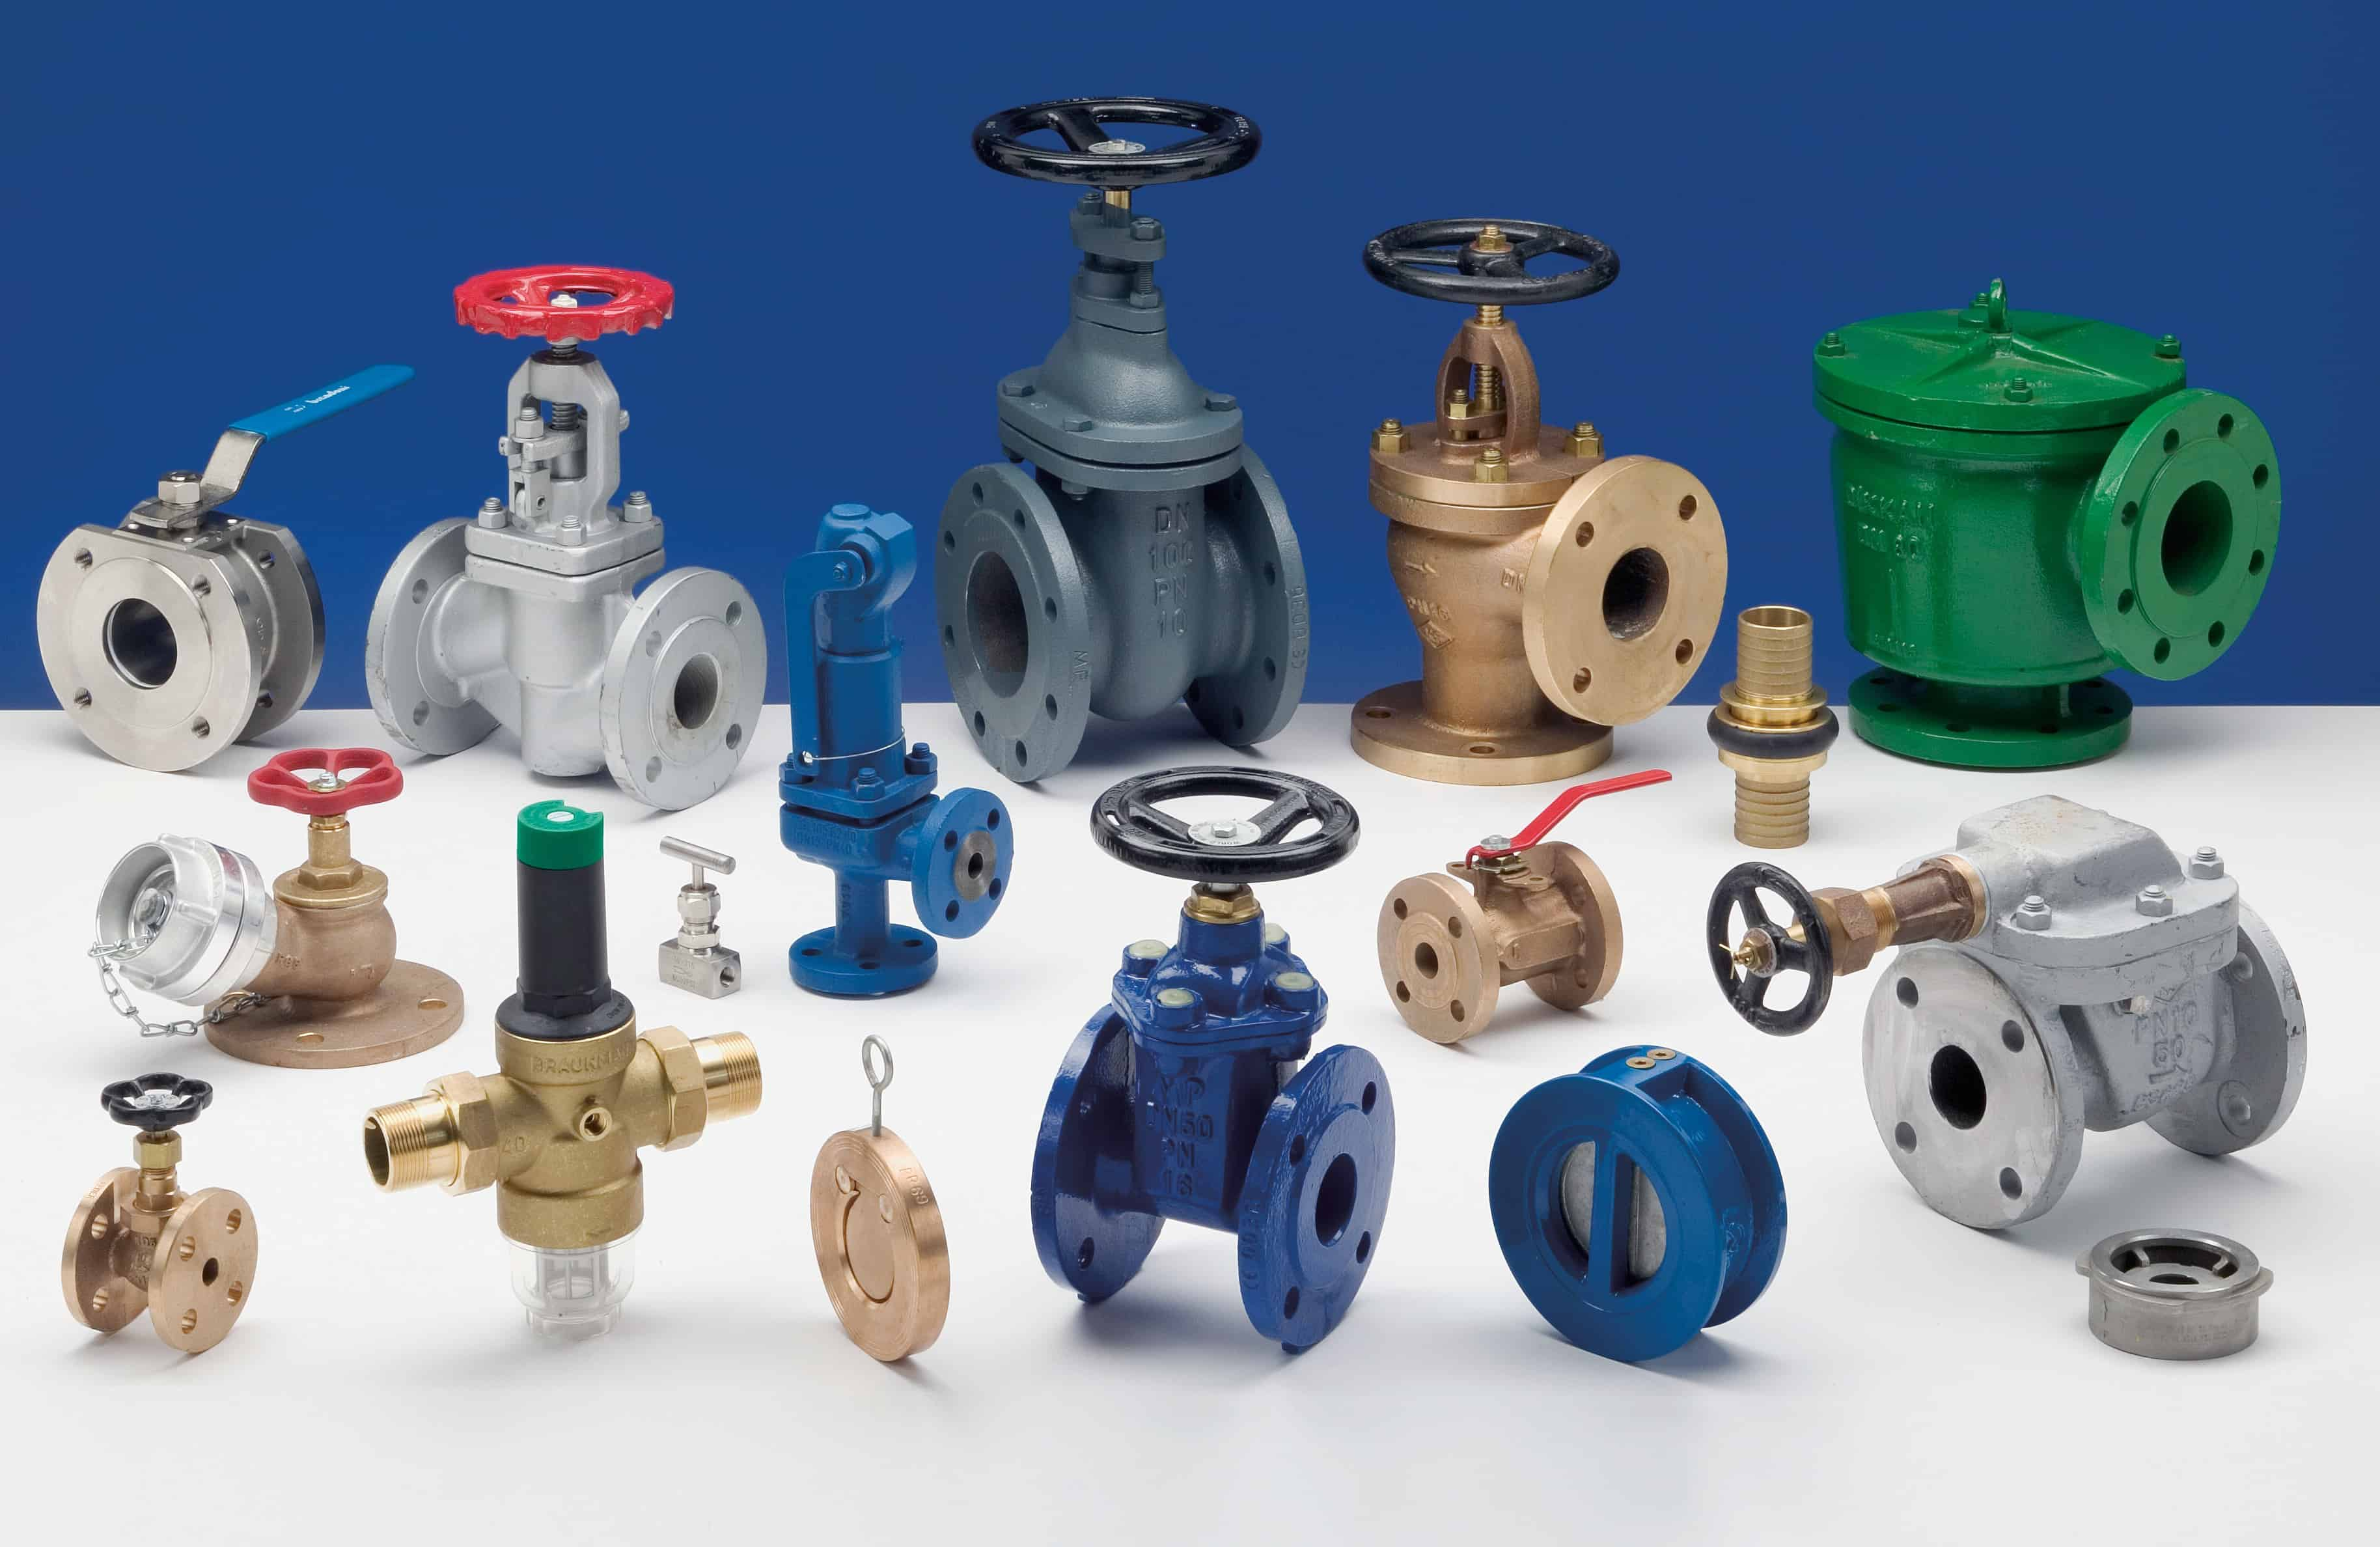 gate valve, ball valve, needle valve, air release valve, pressure relief valve, pressure release valve, non return valve, gate valve, ball valve, float valve, air release valve in oman.